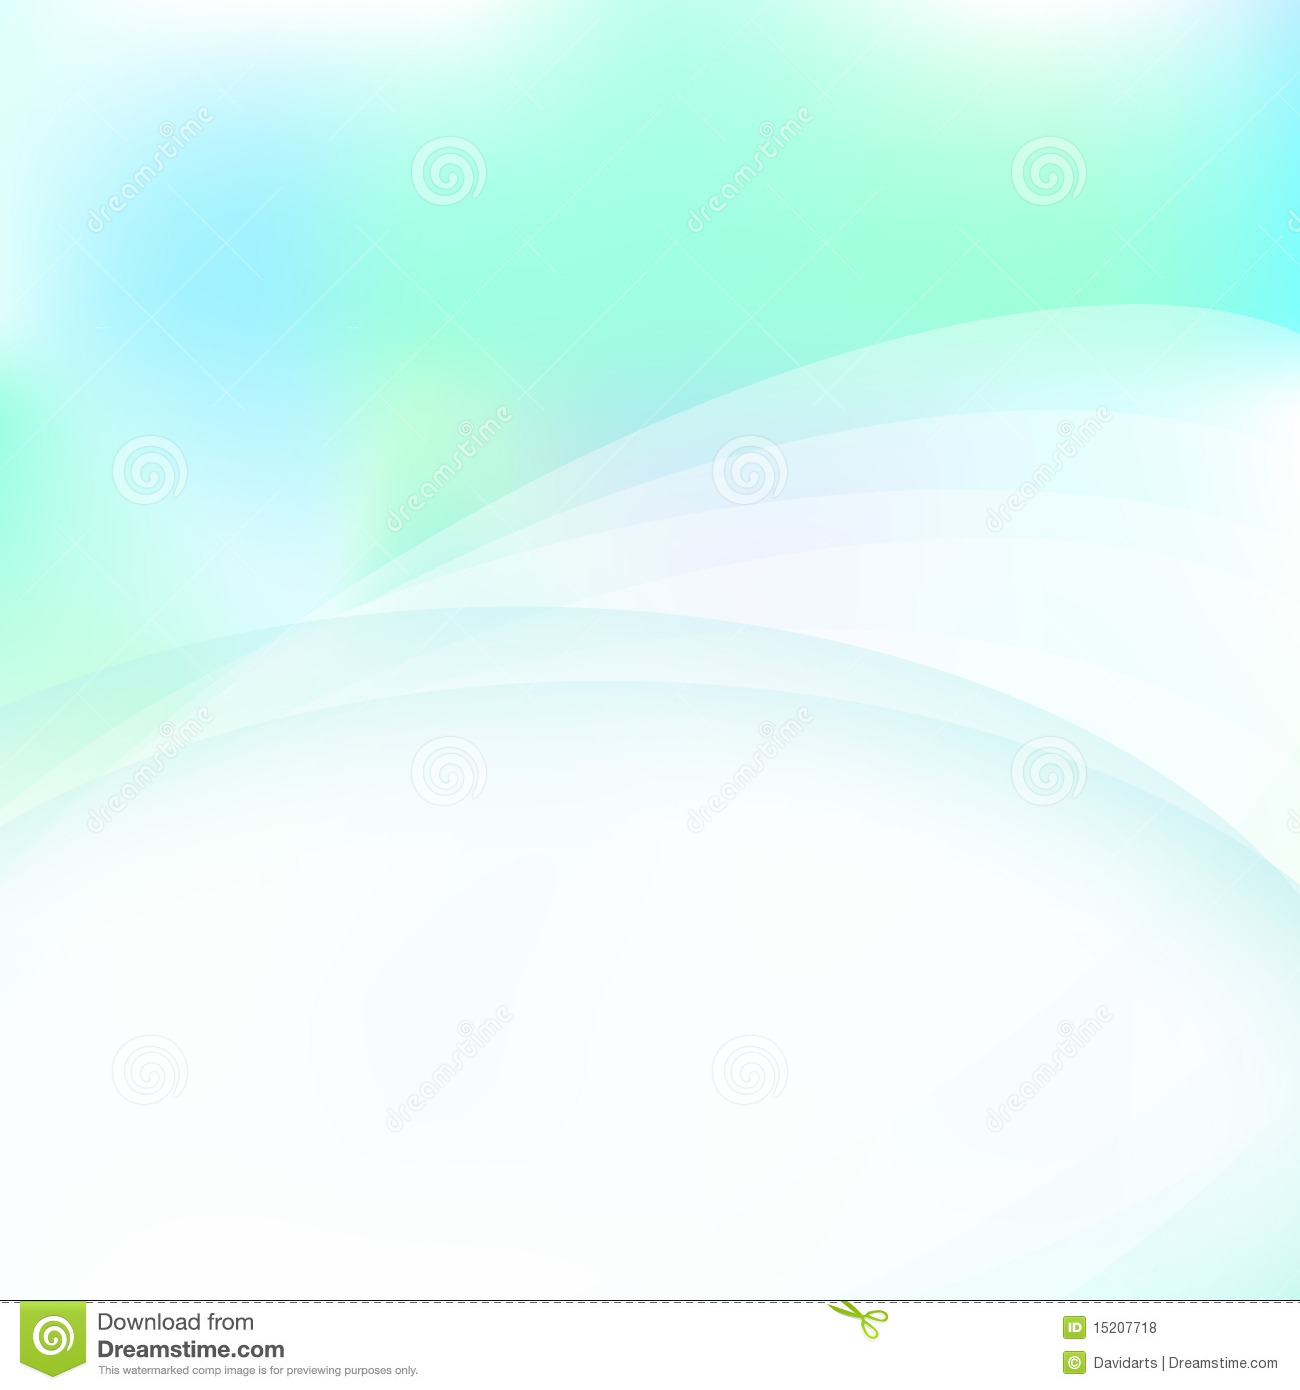 Business Brochure Background Royalty Free Stock Photos